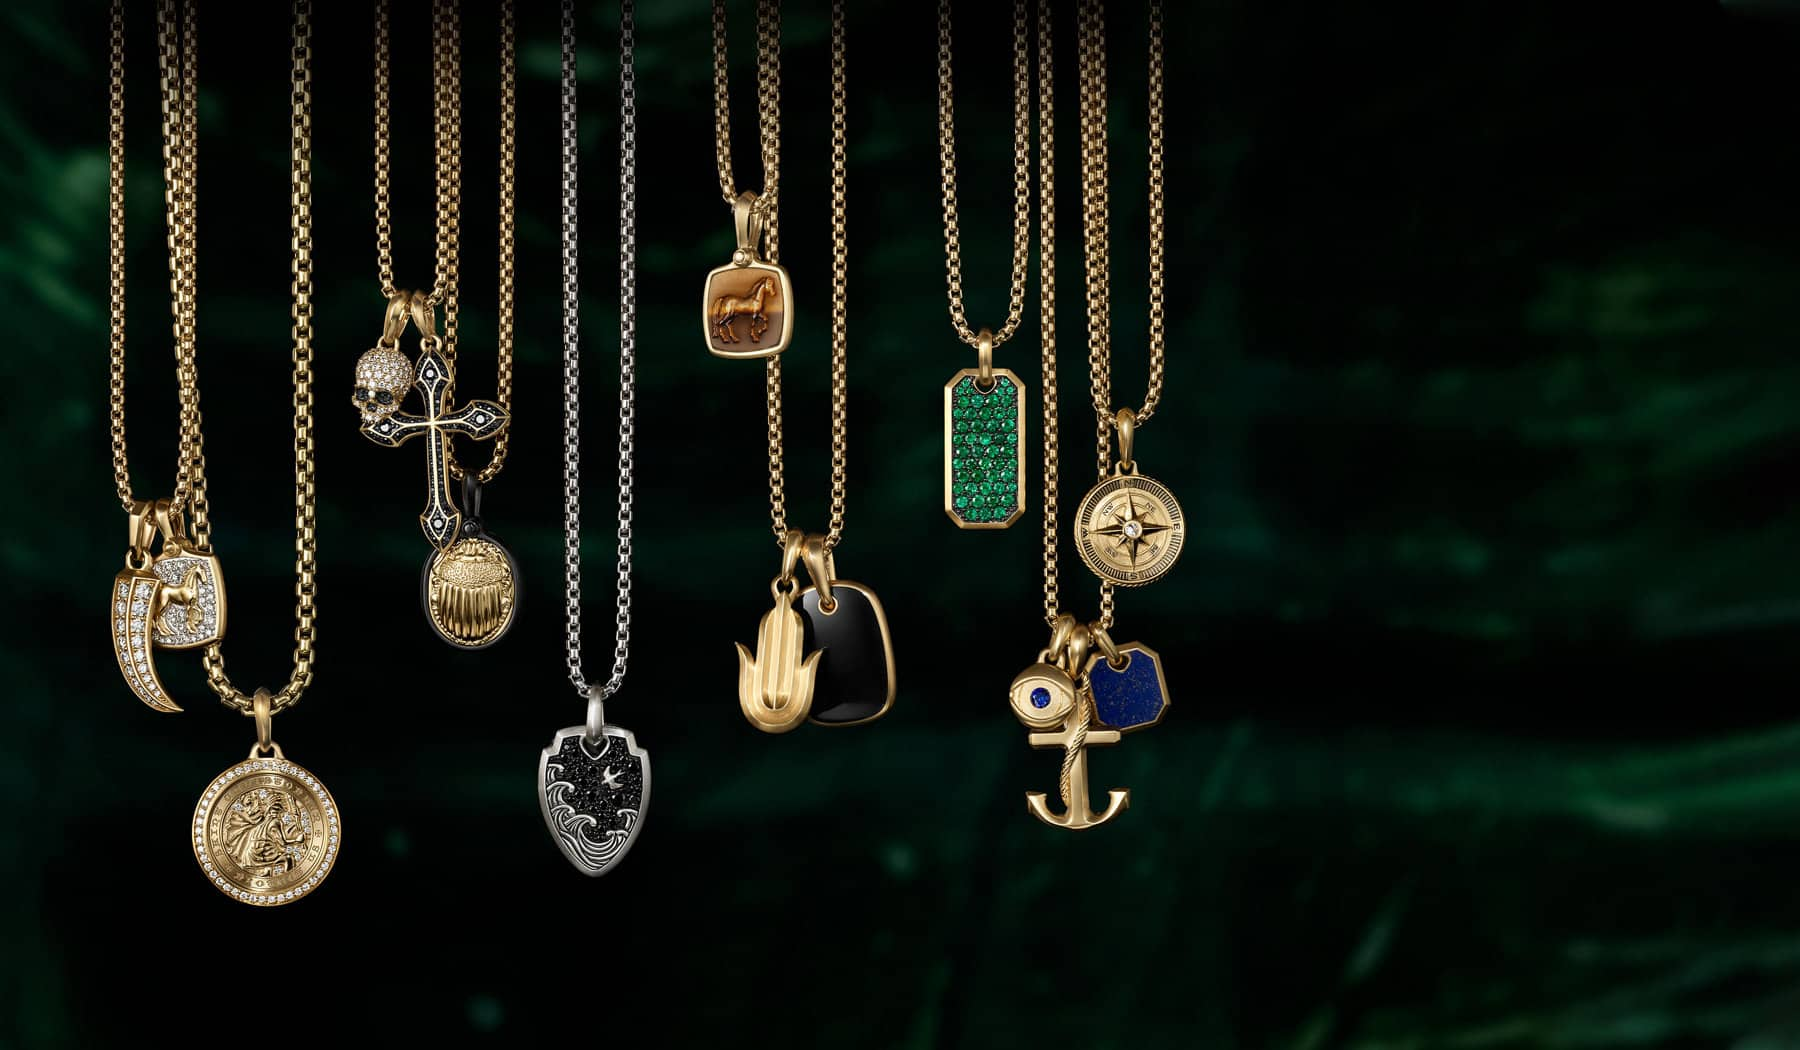 A color photograph shows 15 David Yurman men's amulet pendants strung on box-chain necklaces suspended in front of a dark green stained glass panel illuminated by light. The men's pendants and necklaces are crafted from sterling silver or 18K yellow gold with or without pavé diamonds and an array of colored gemstones. The amulets come in various shapes such as a dog tag, horn, dagger, cross, anchor or depict a multitude of images such as a horse, compass rose, Hamsa hand, St. Christopher or a scarab.